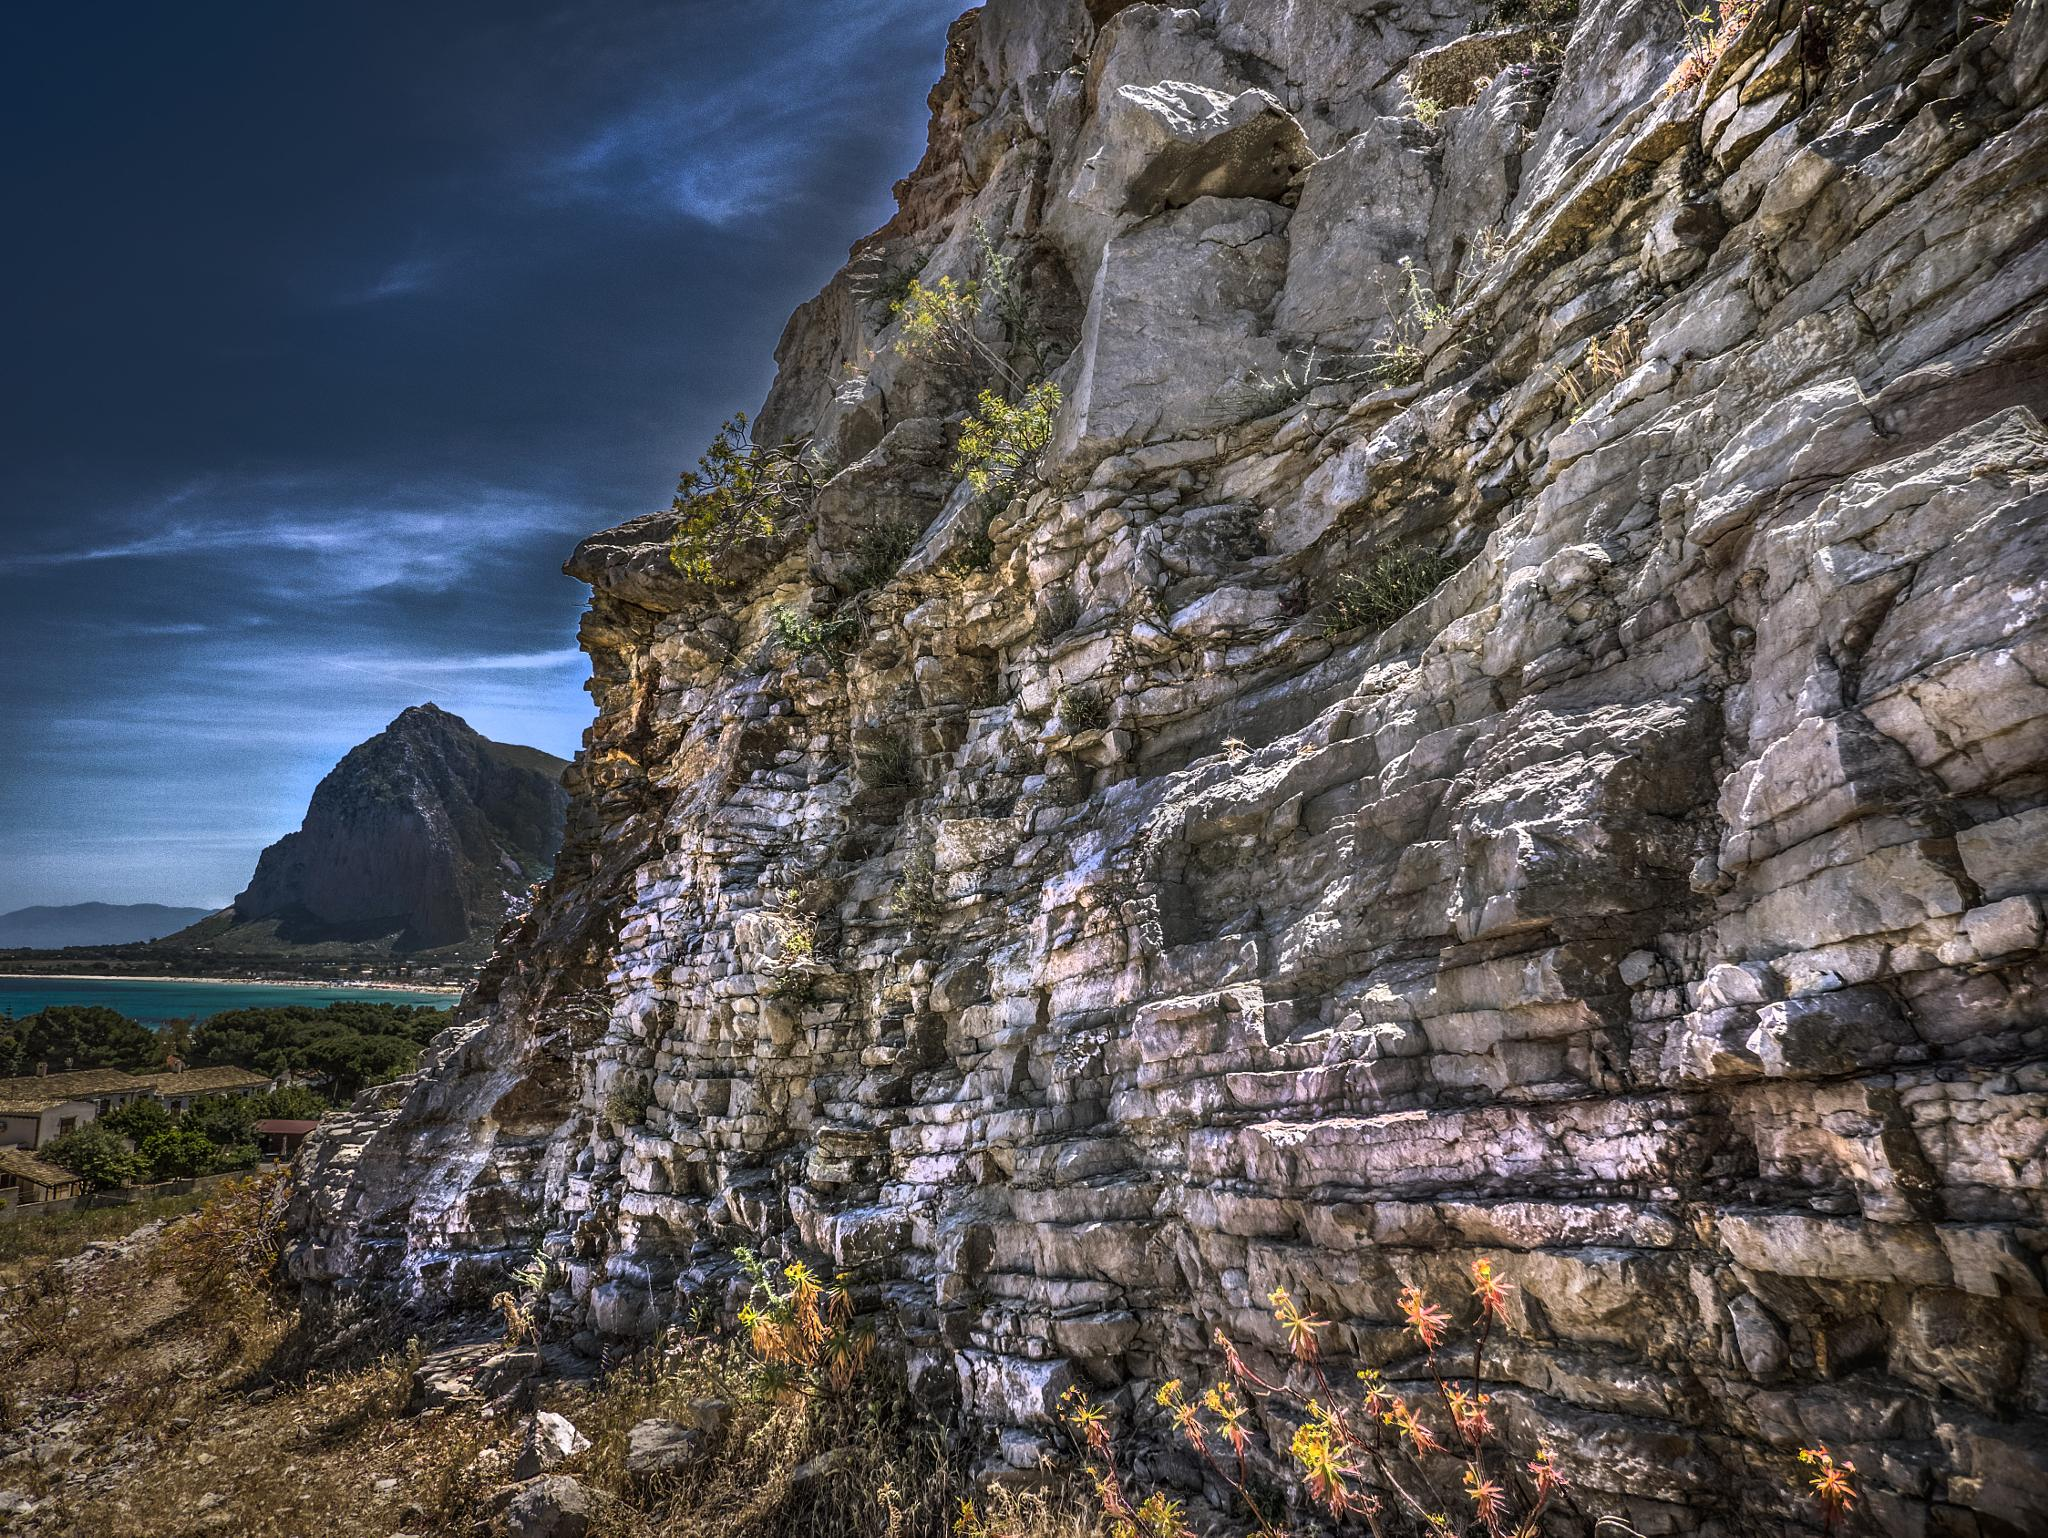 HDR from 7 shots +/-2EV by Giuseppe Fallica